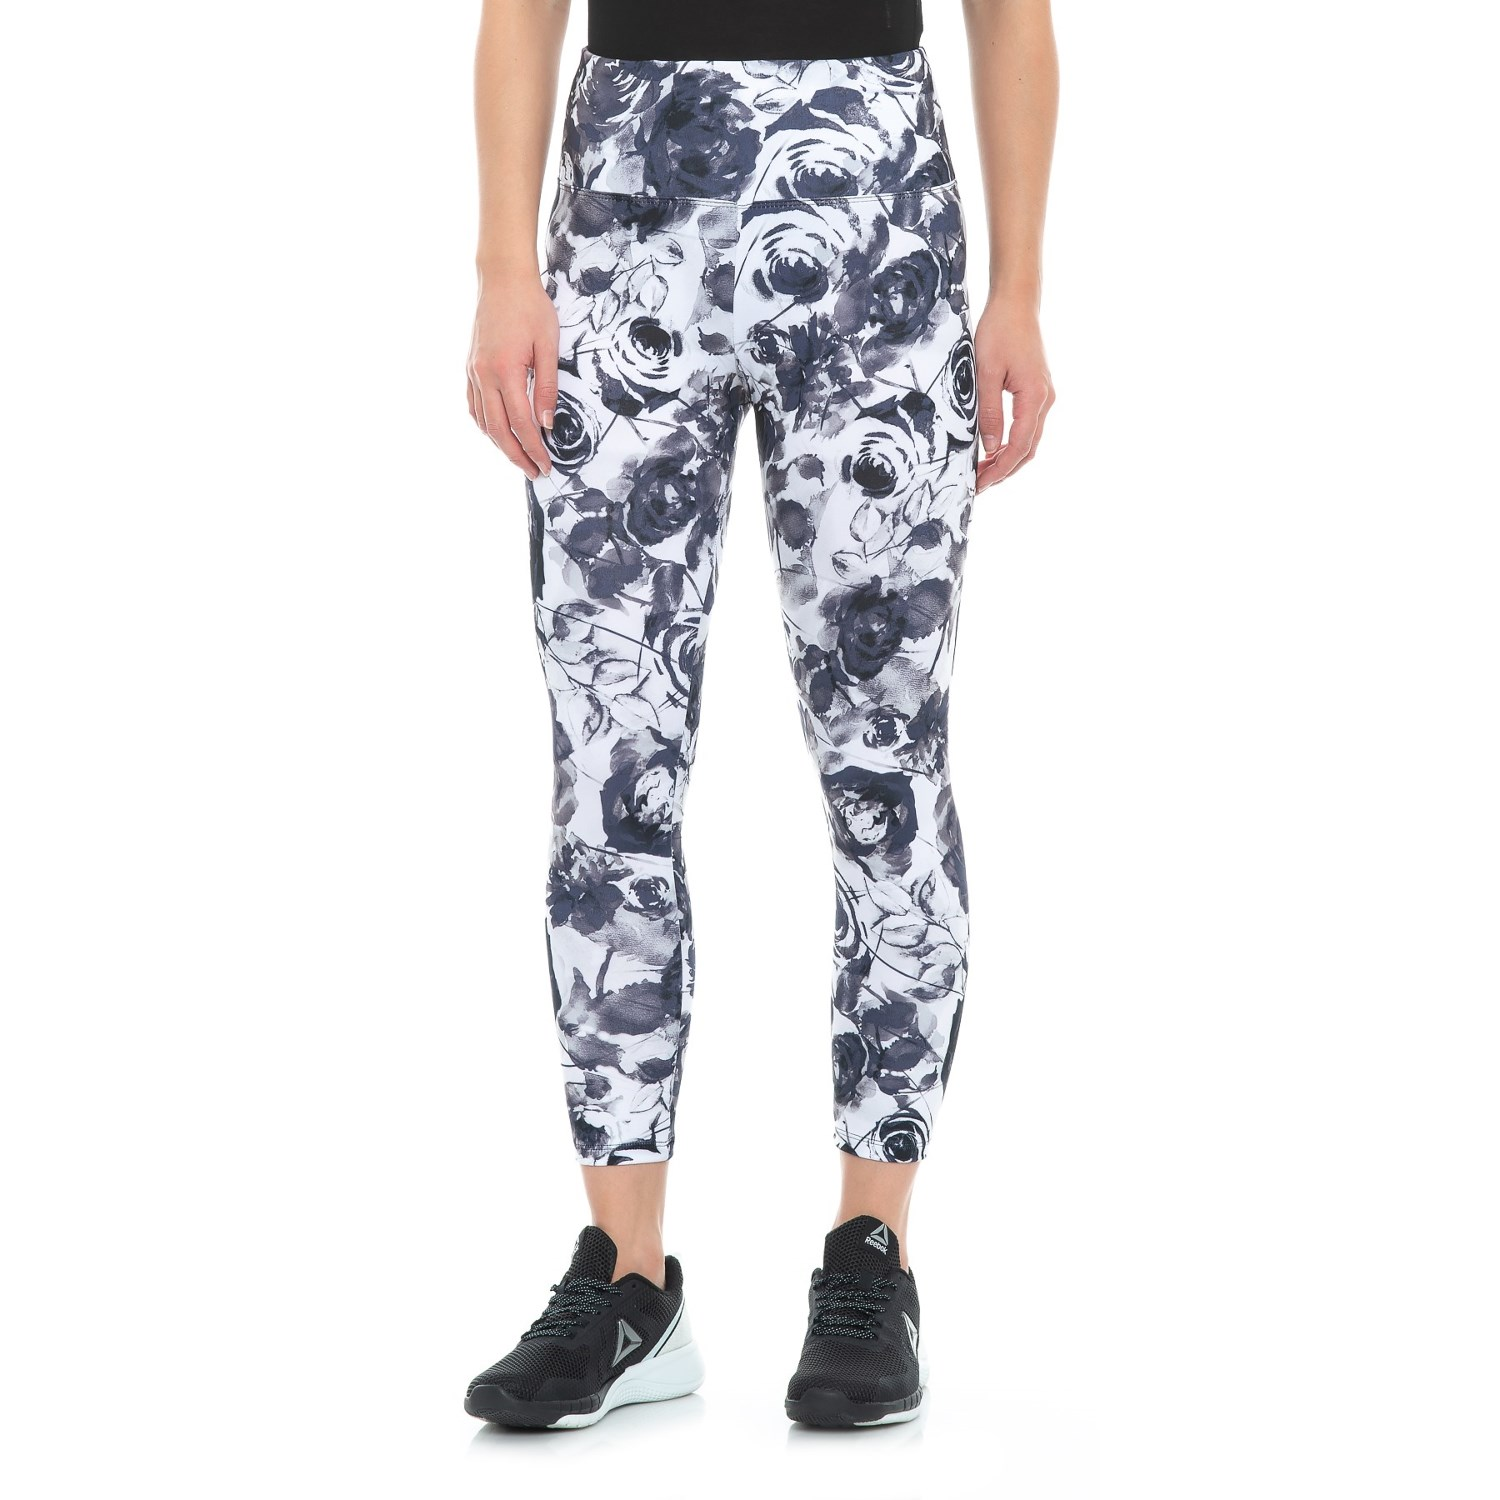 7fa0b515df Balance Collection Printed High-Waist Capri Leggings (For Women) in  Greystone Faded Roses ...